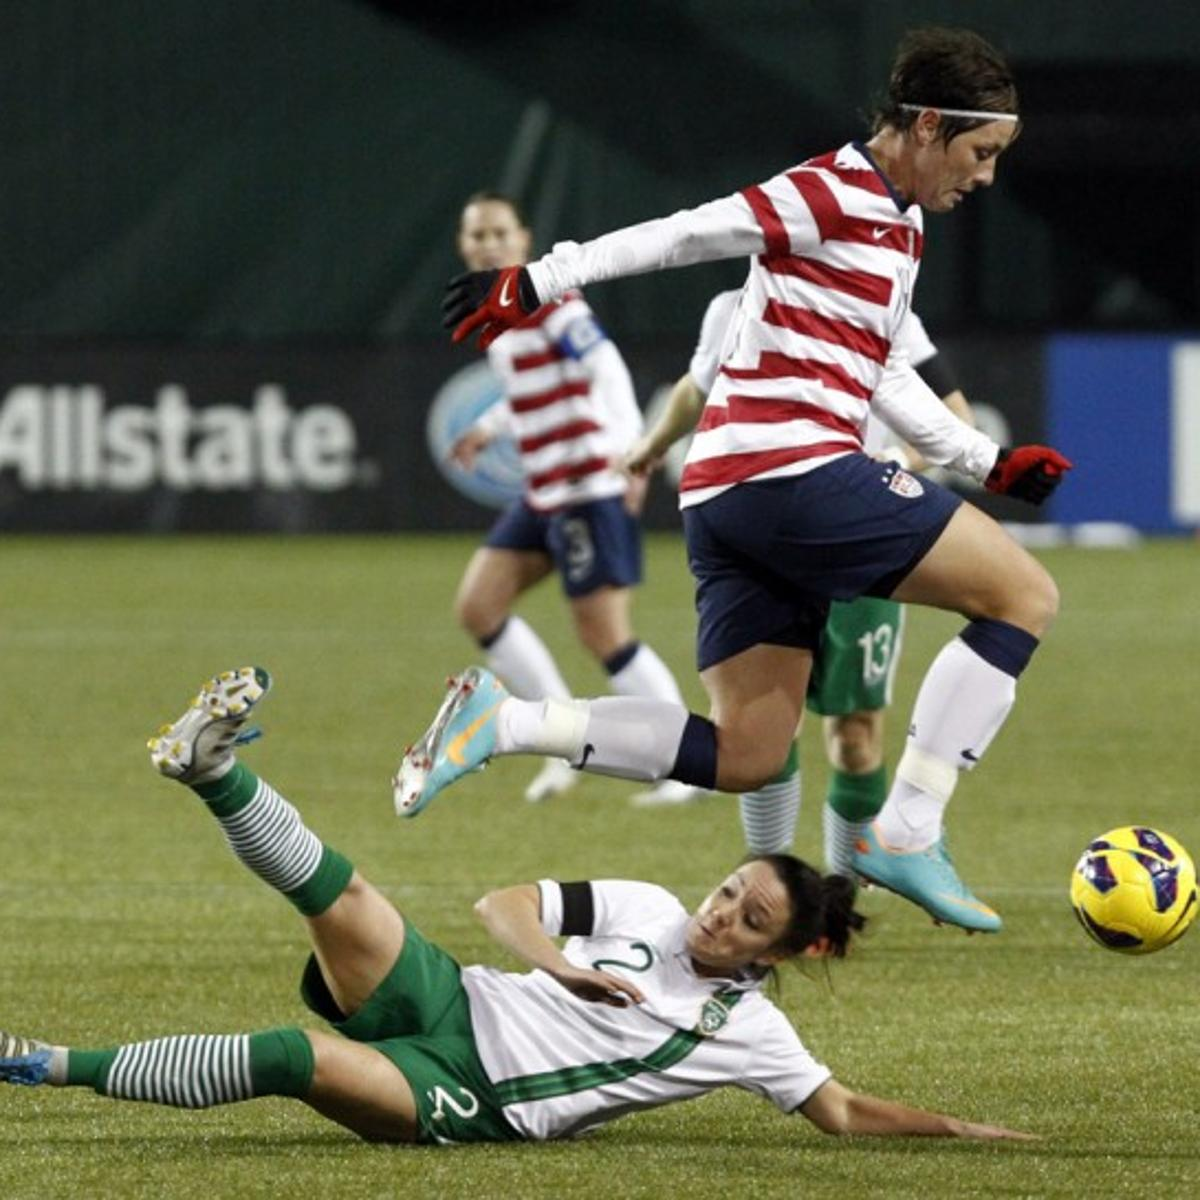 08d13bb5a01 Women's soccer: USA 5, Ireland 0: Morgan scores hat trick in 1st half